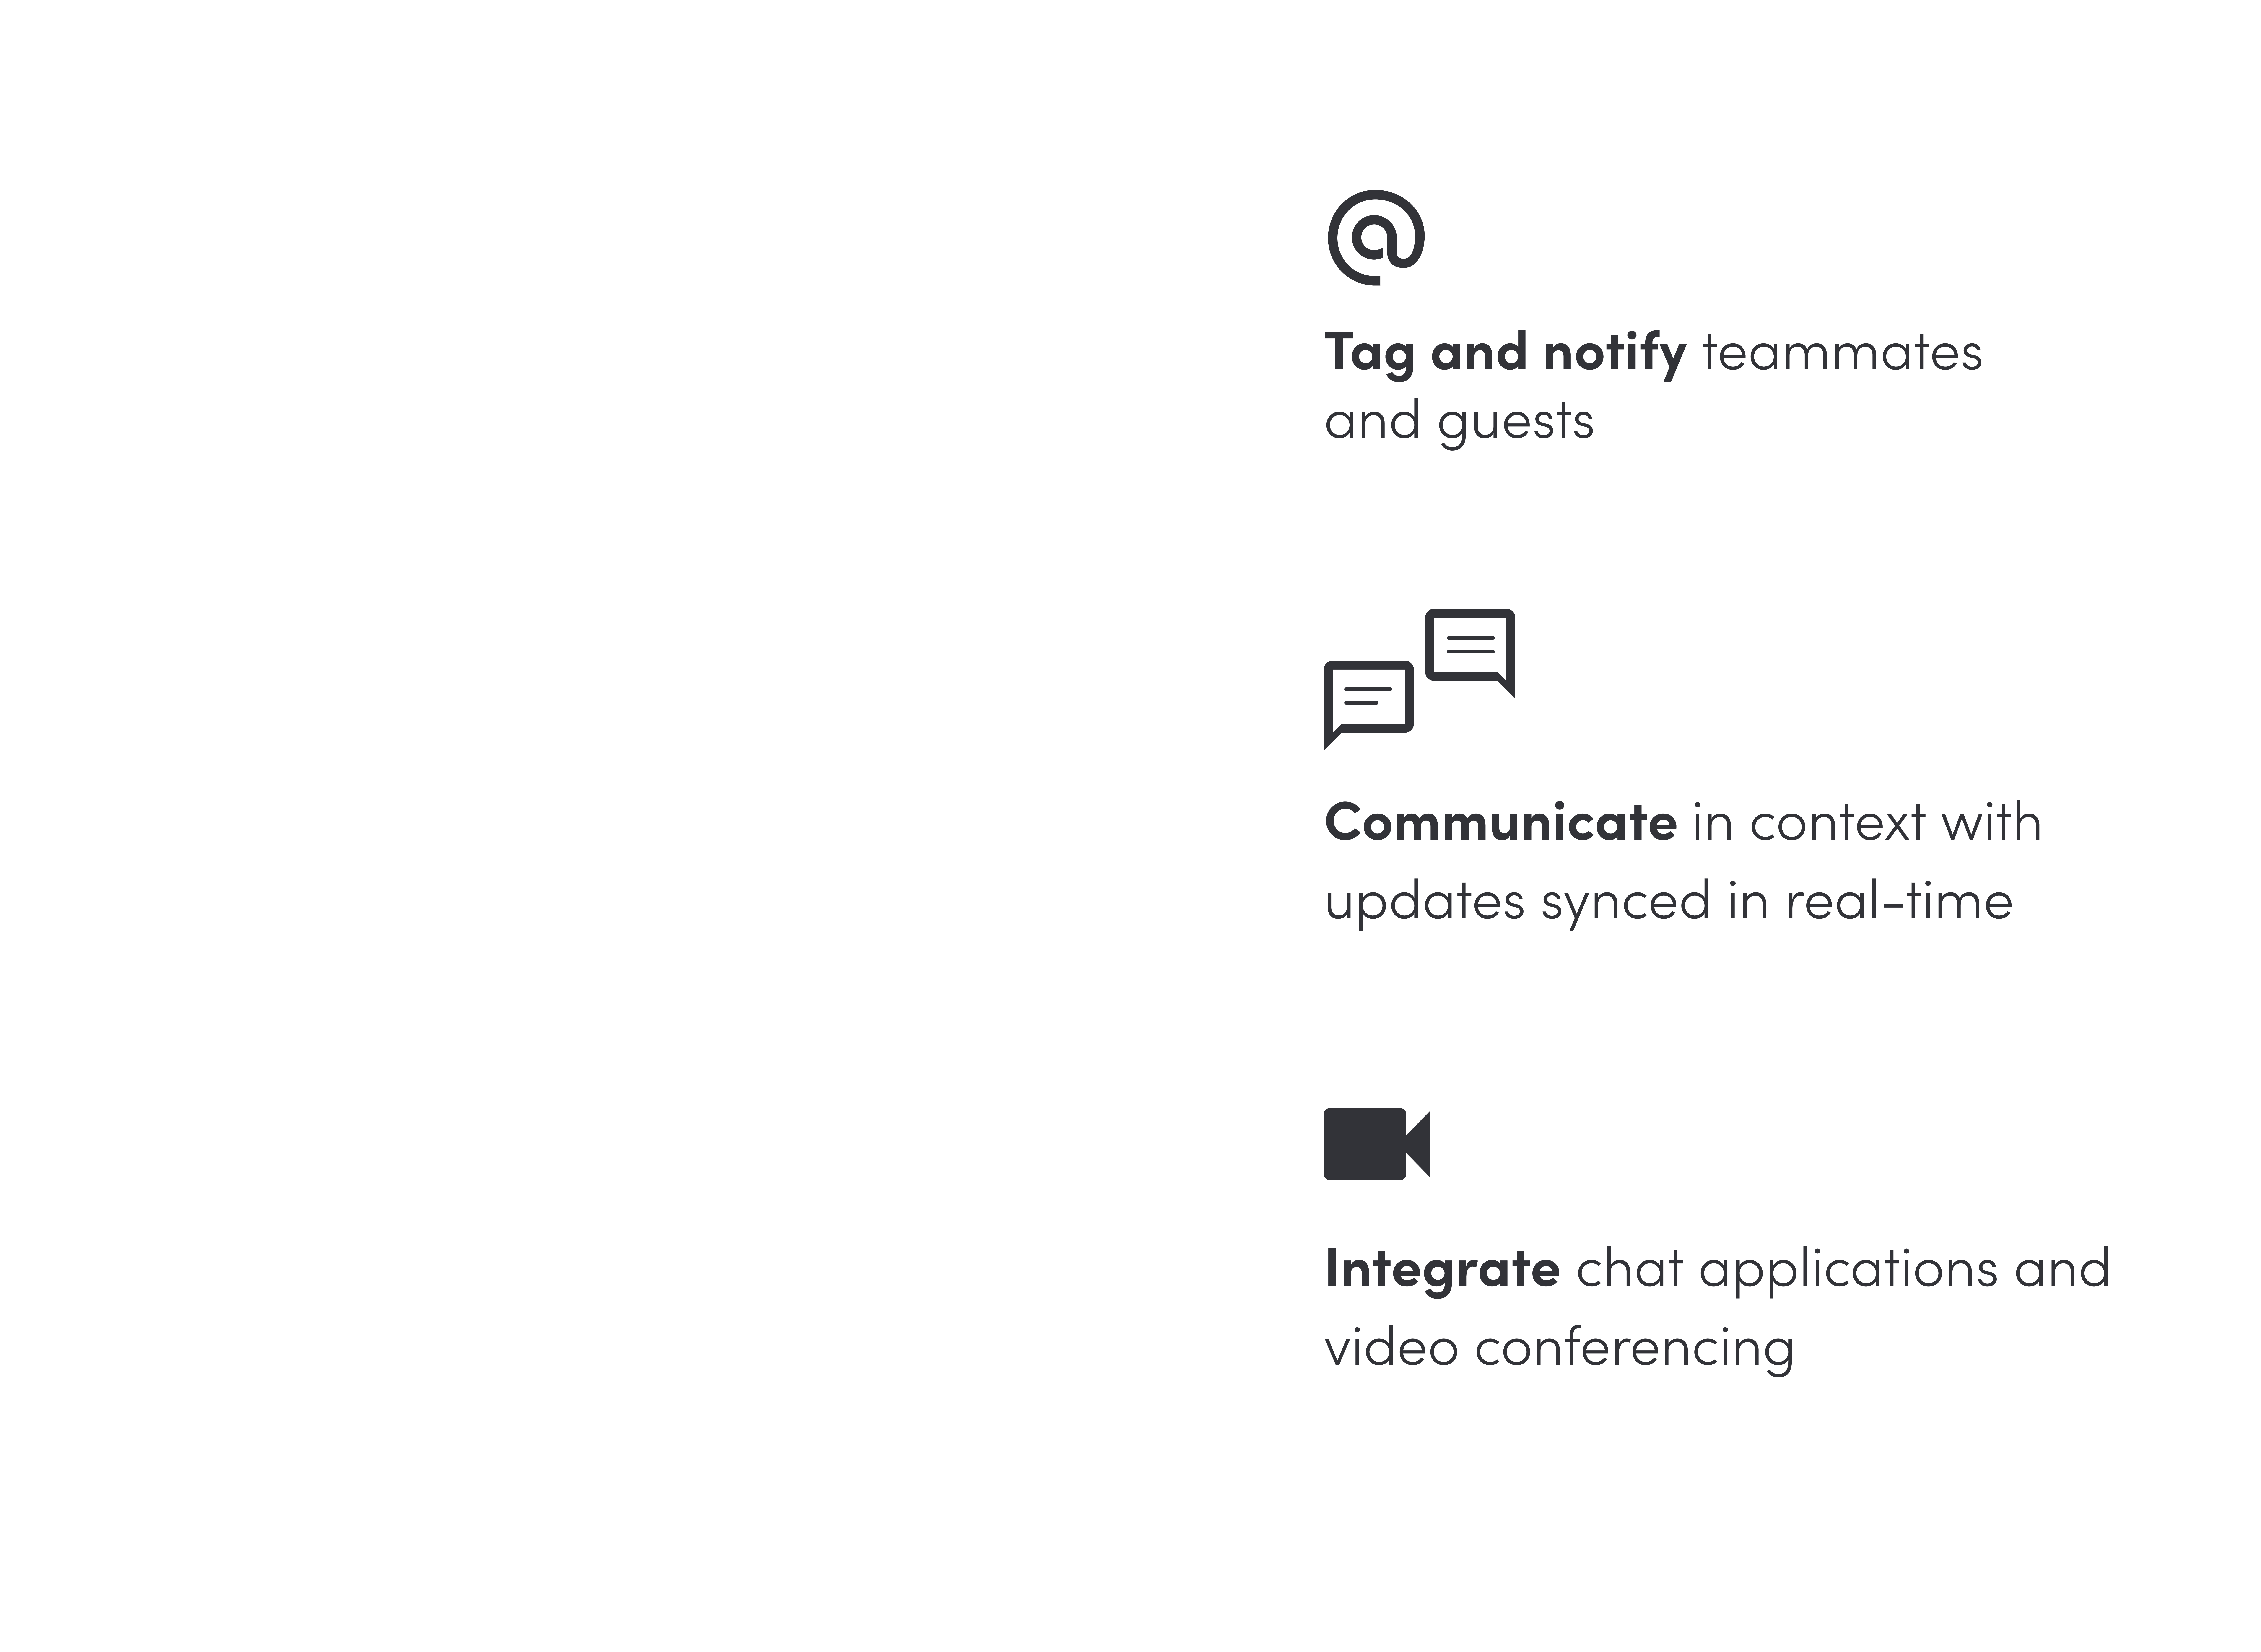 Tag and notify teammates. Communicate in context. Integrate chat applications